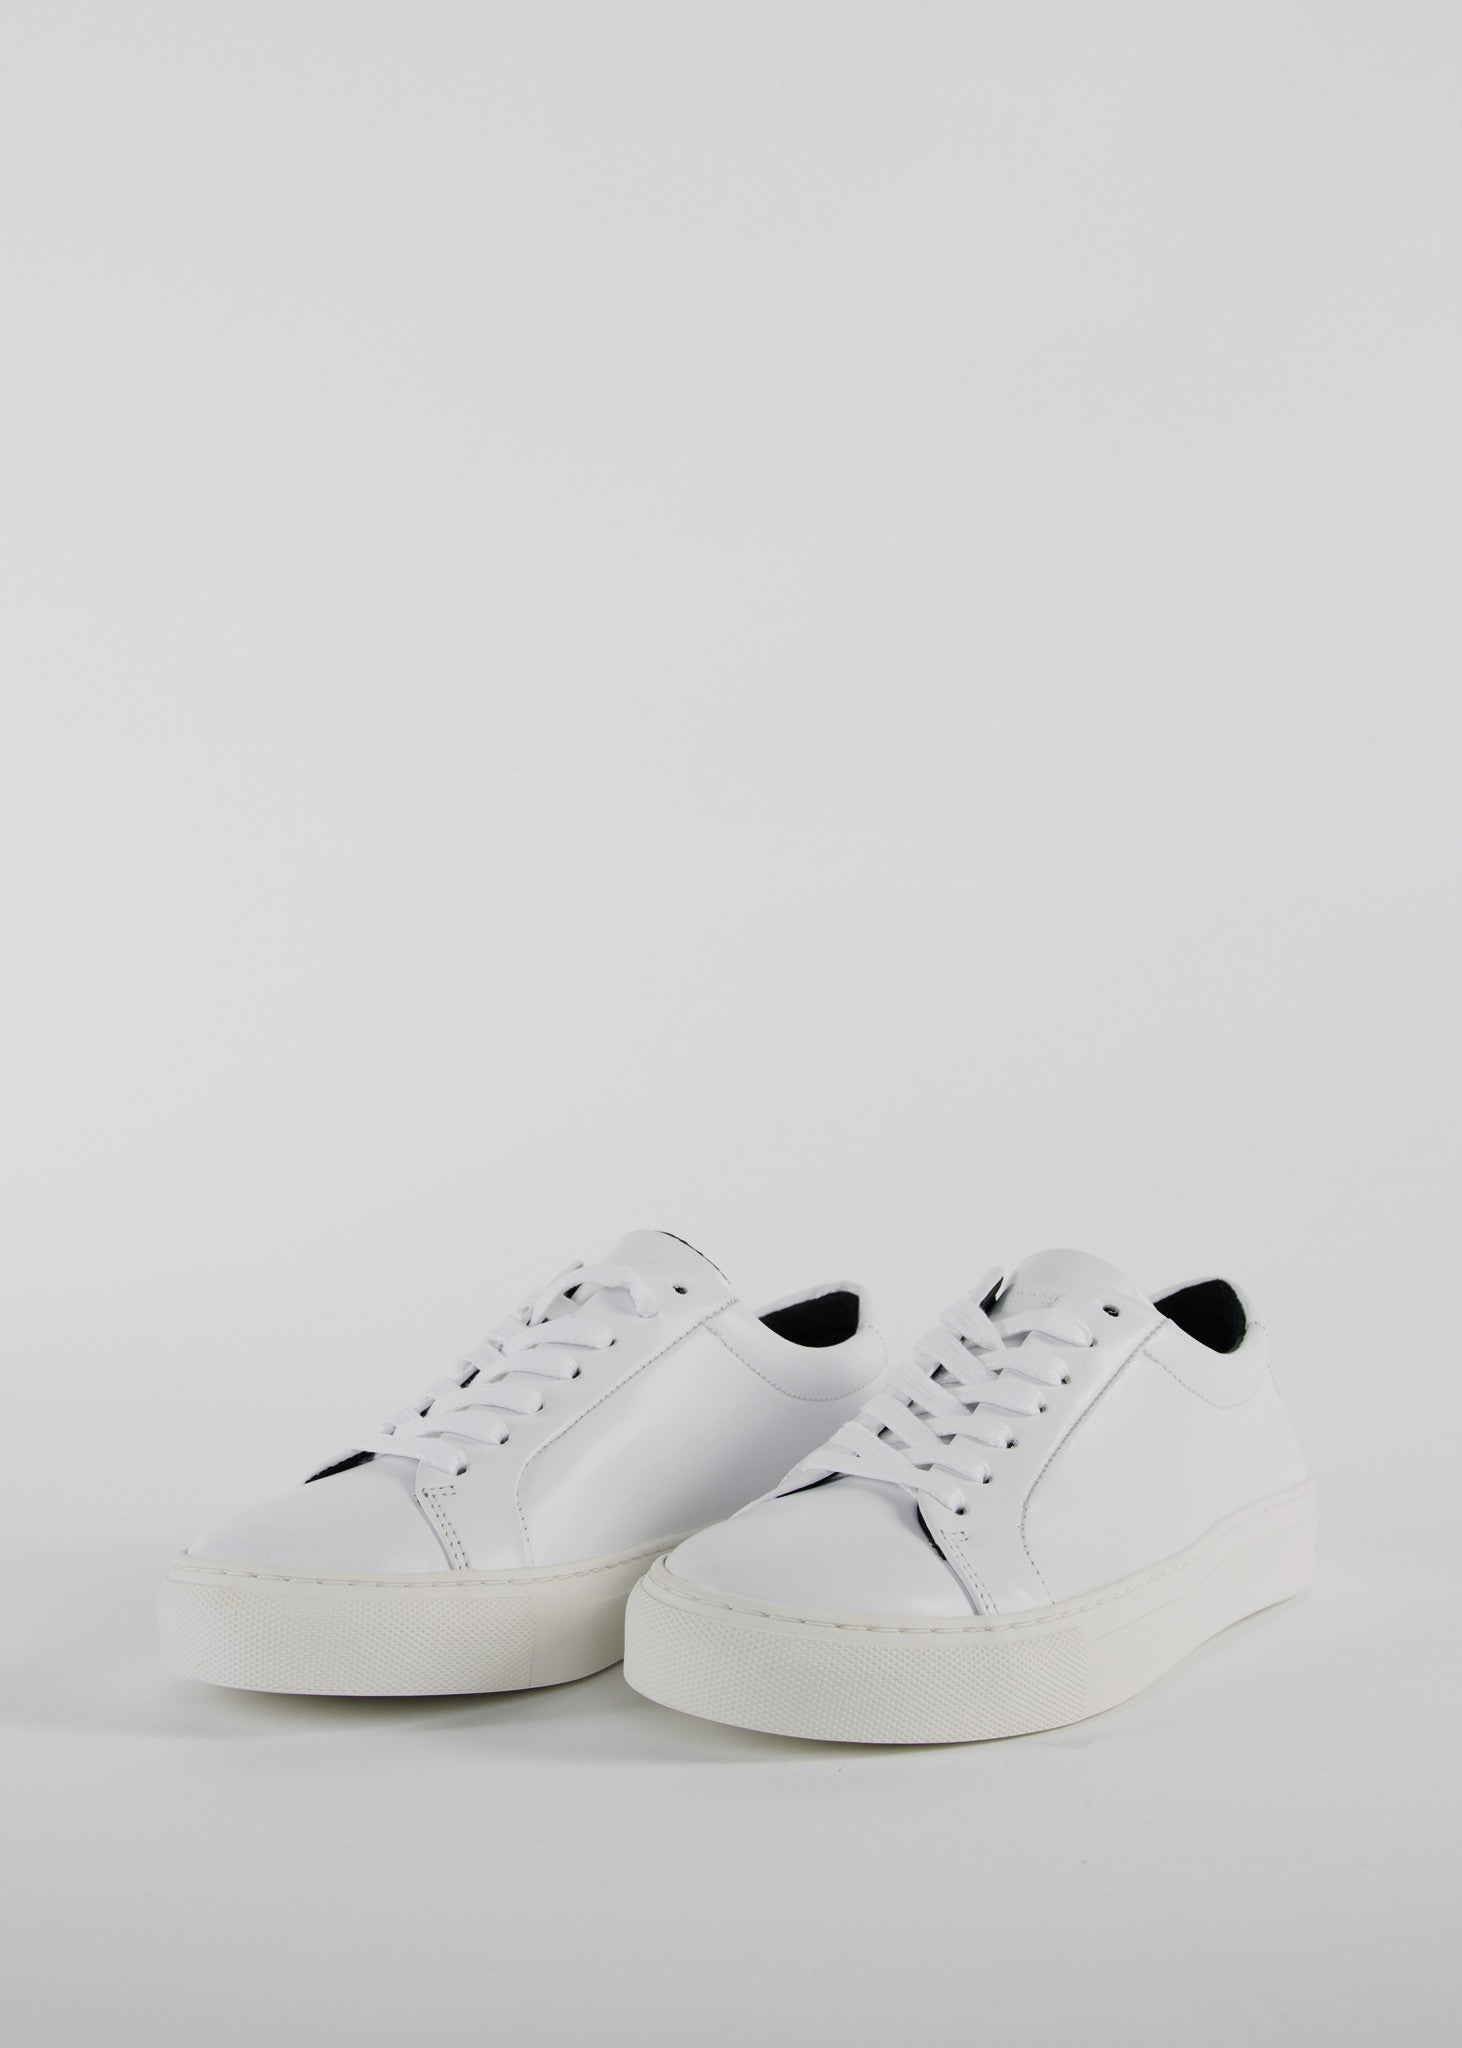 Elpique Shoe Polido White